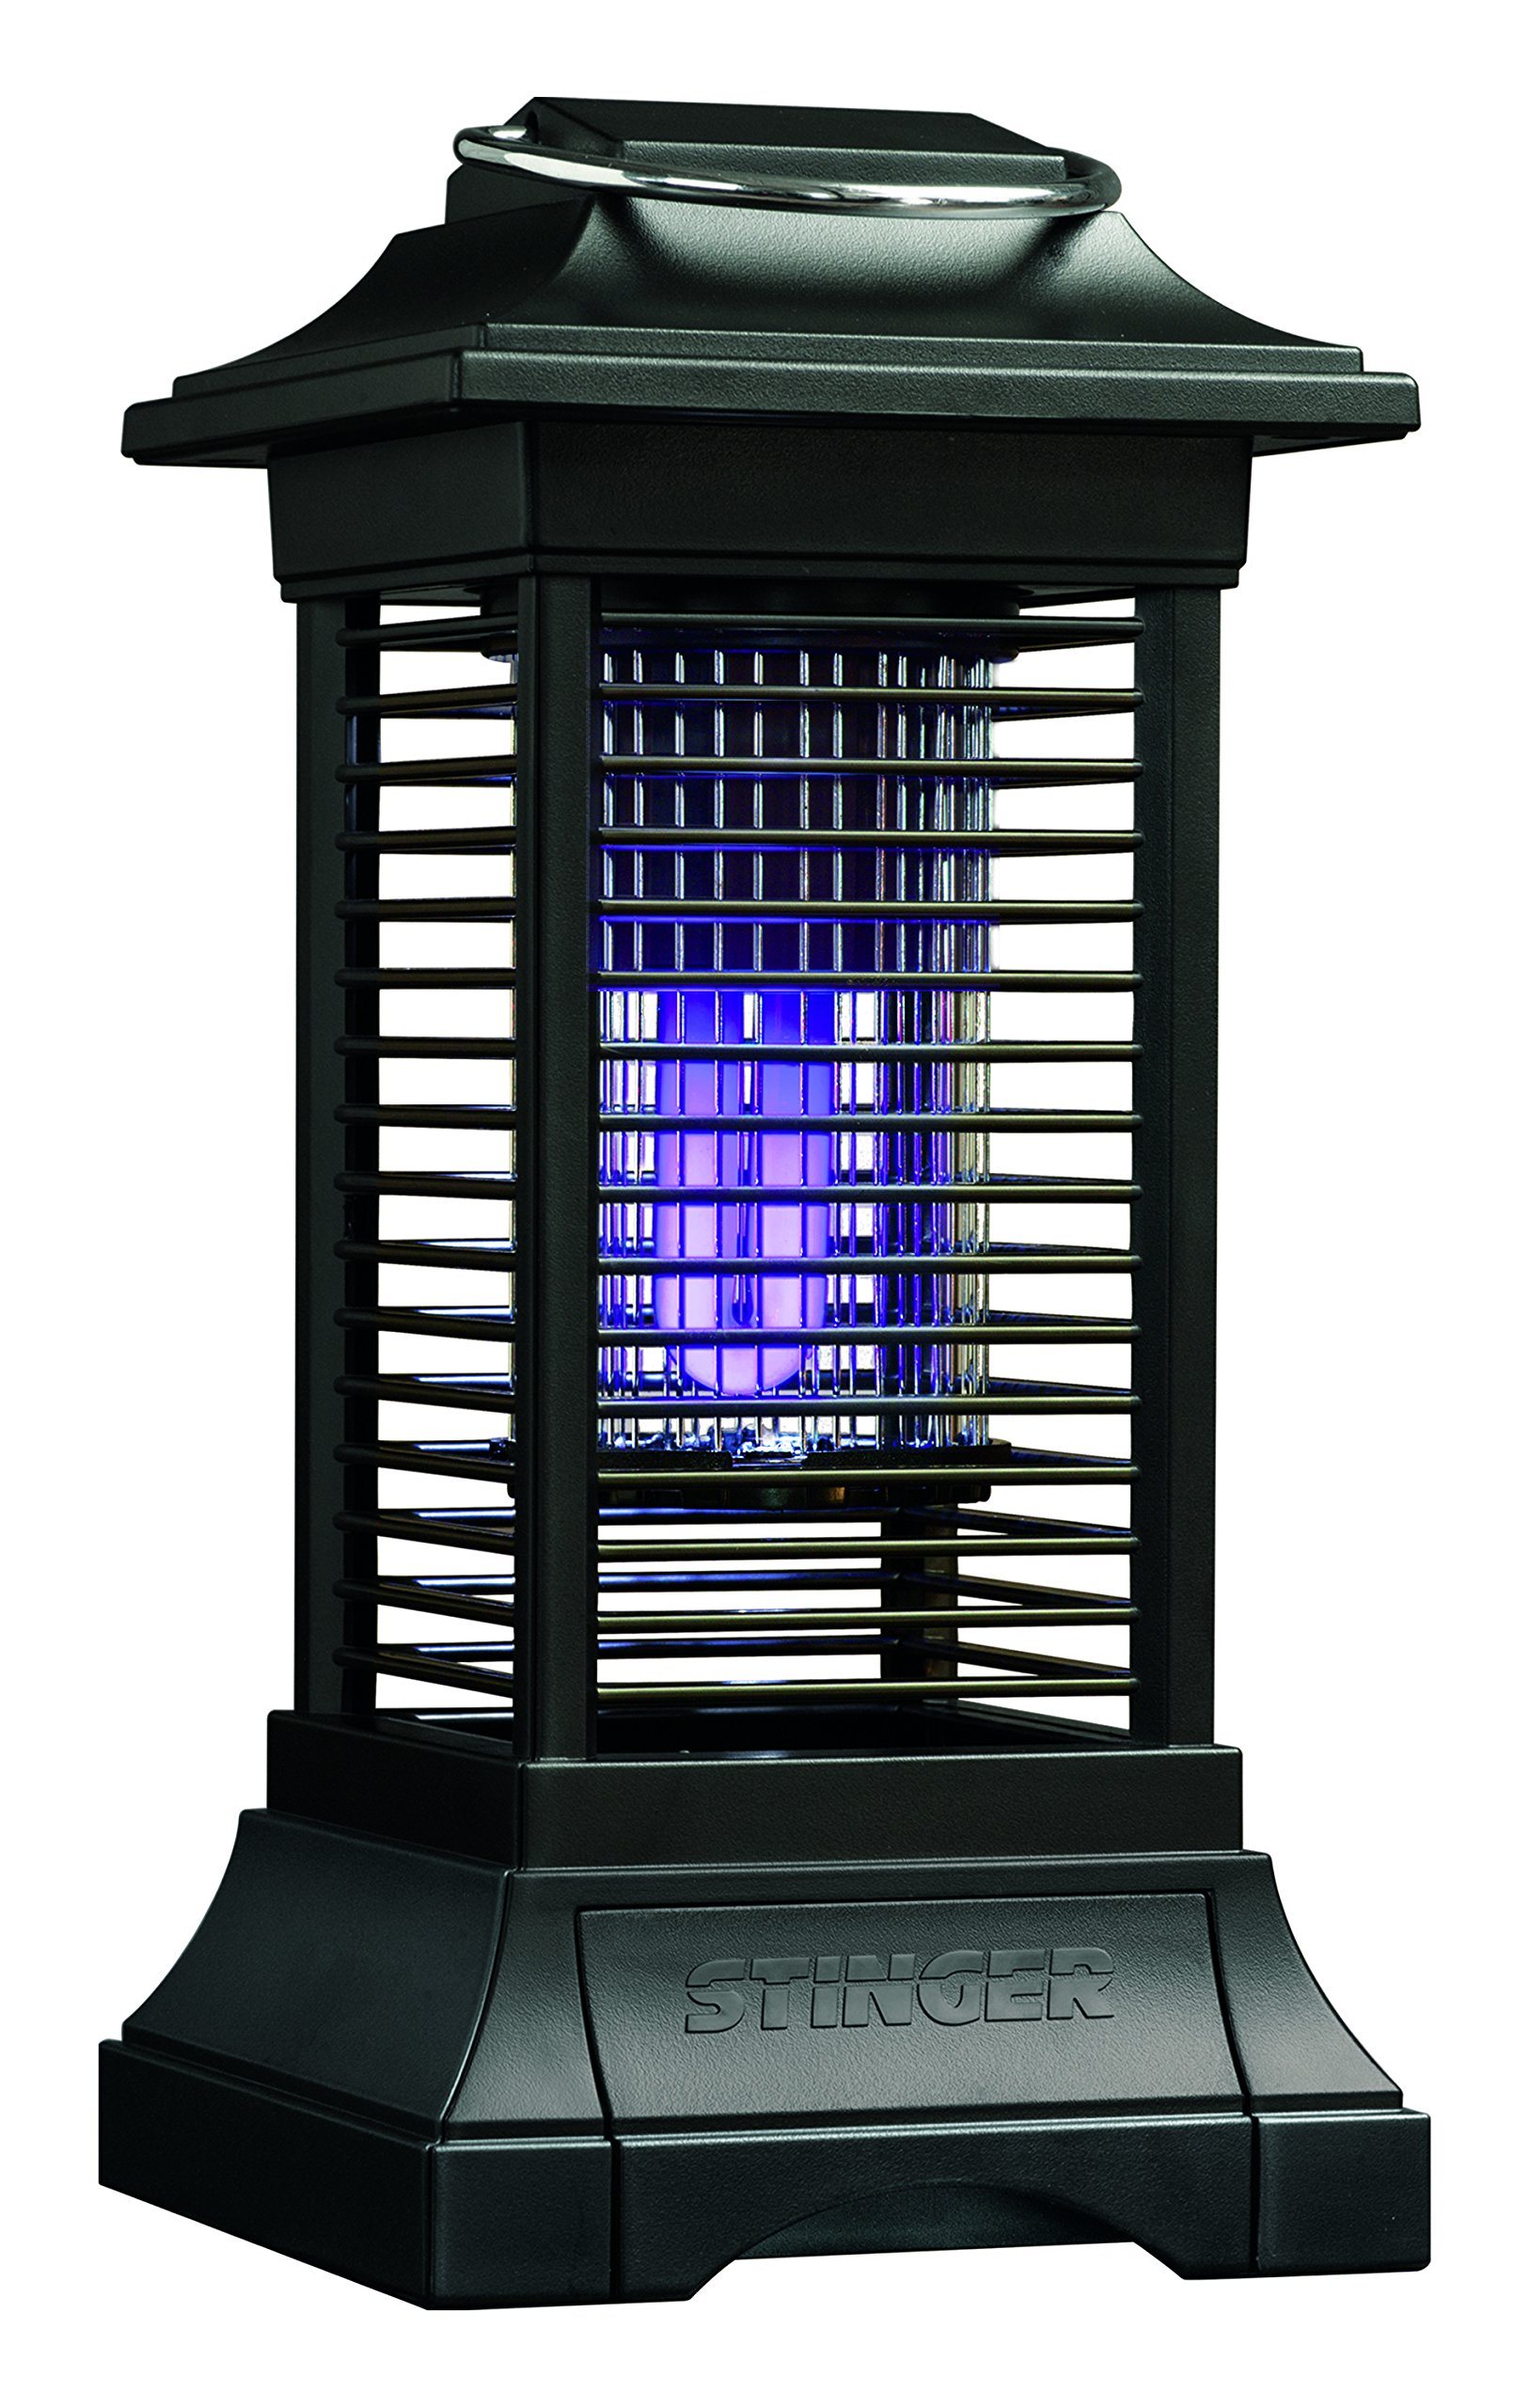 Stinger Cordless Rechargable Insect Zapper, Black by Stinger